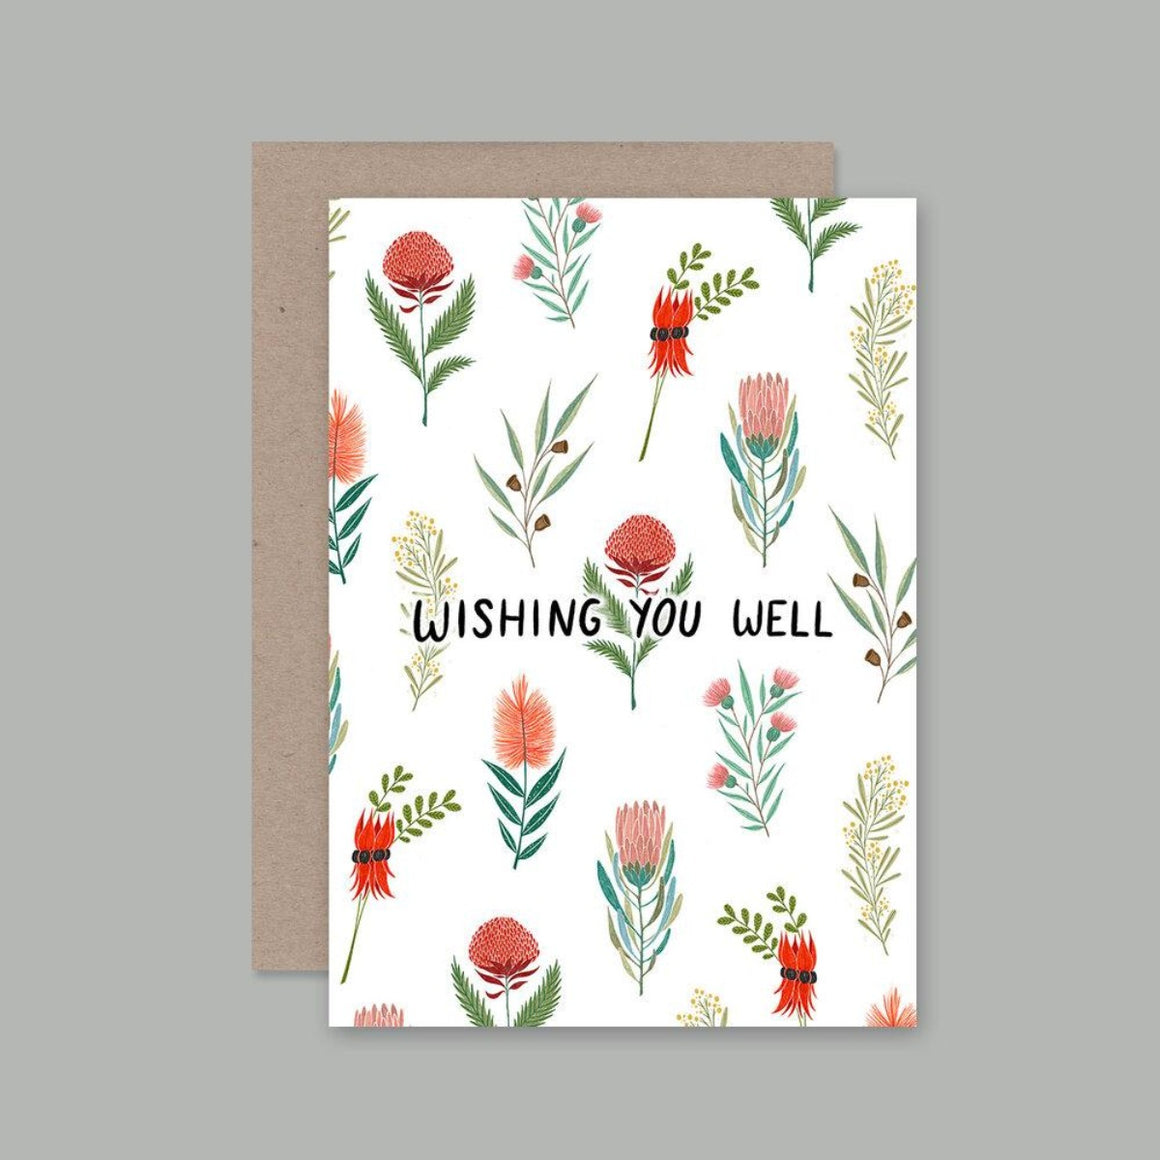 Greeting Card featuring illustrations of Australian flowers and the words wishing you well